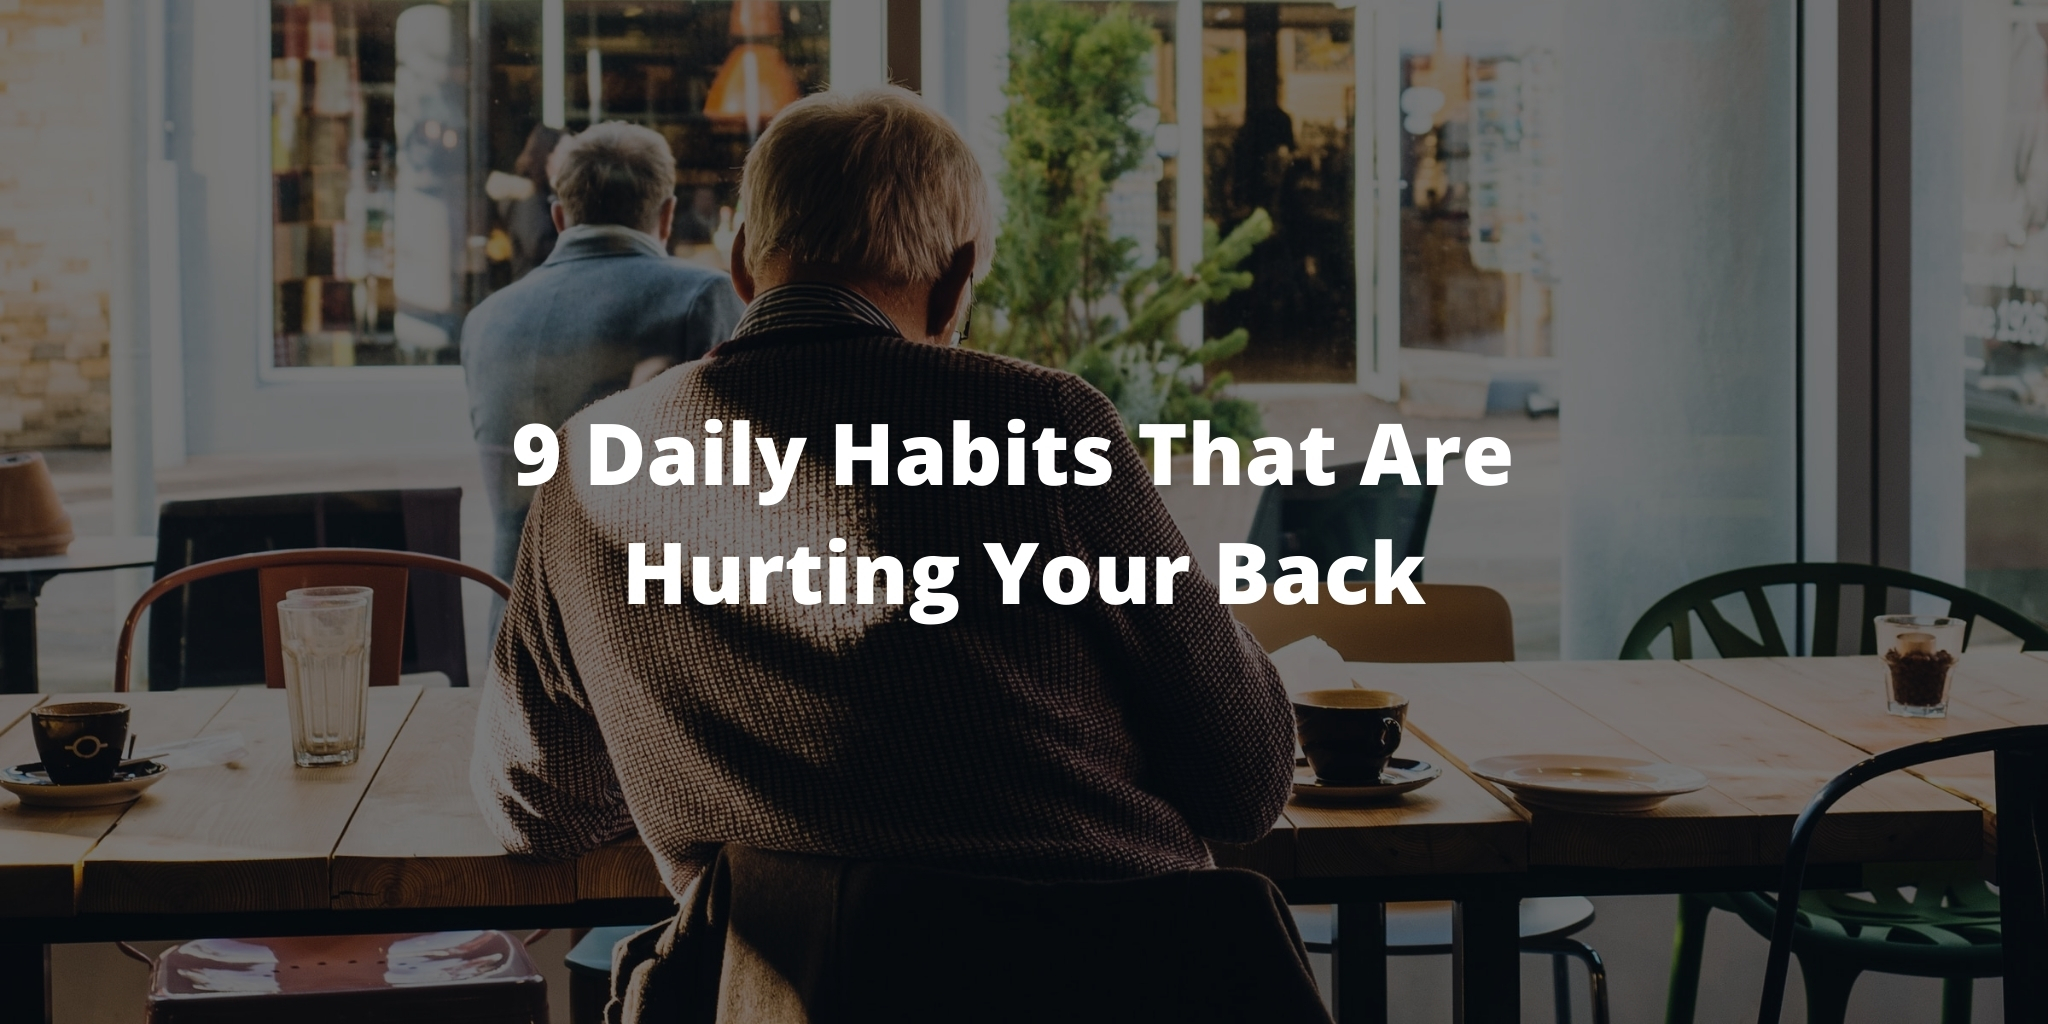 9 Daily Habits That Are Hurting Your Back